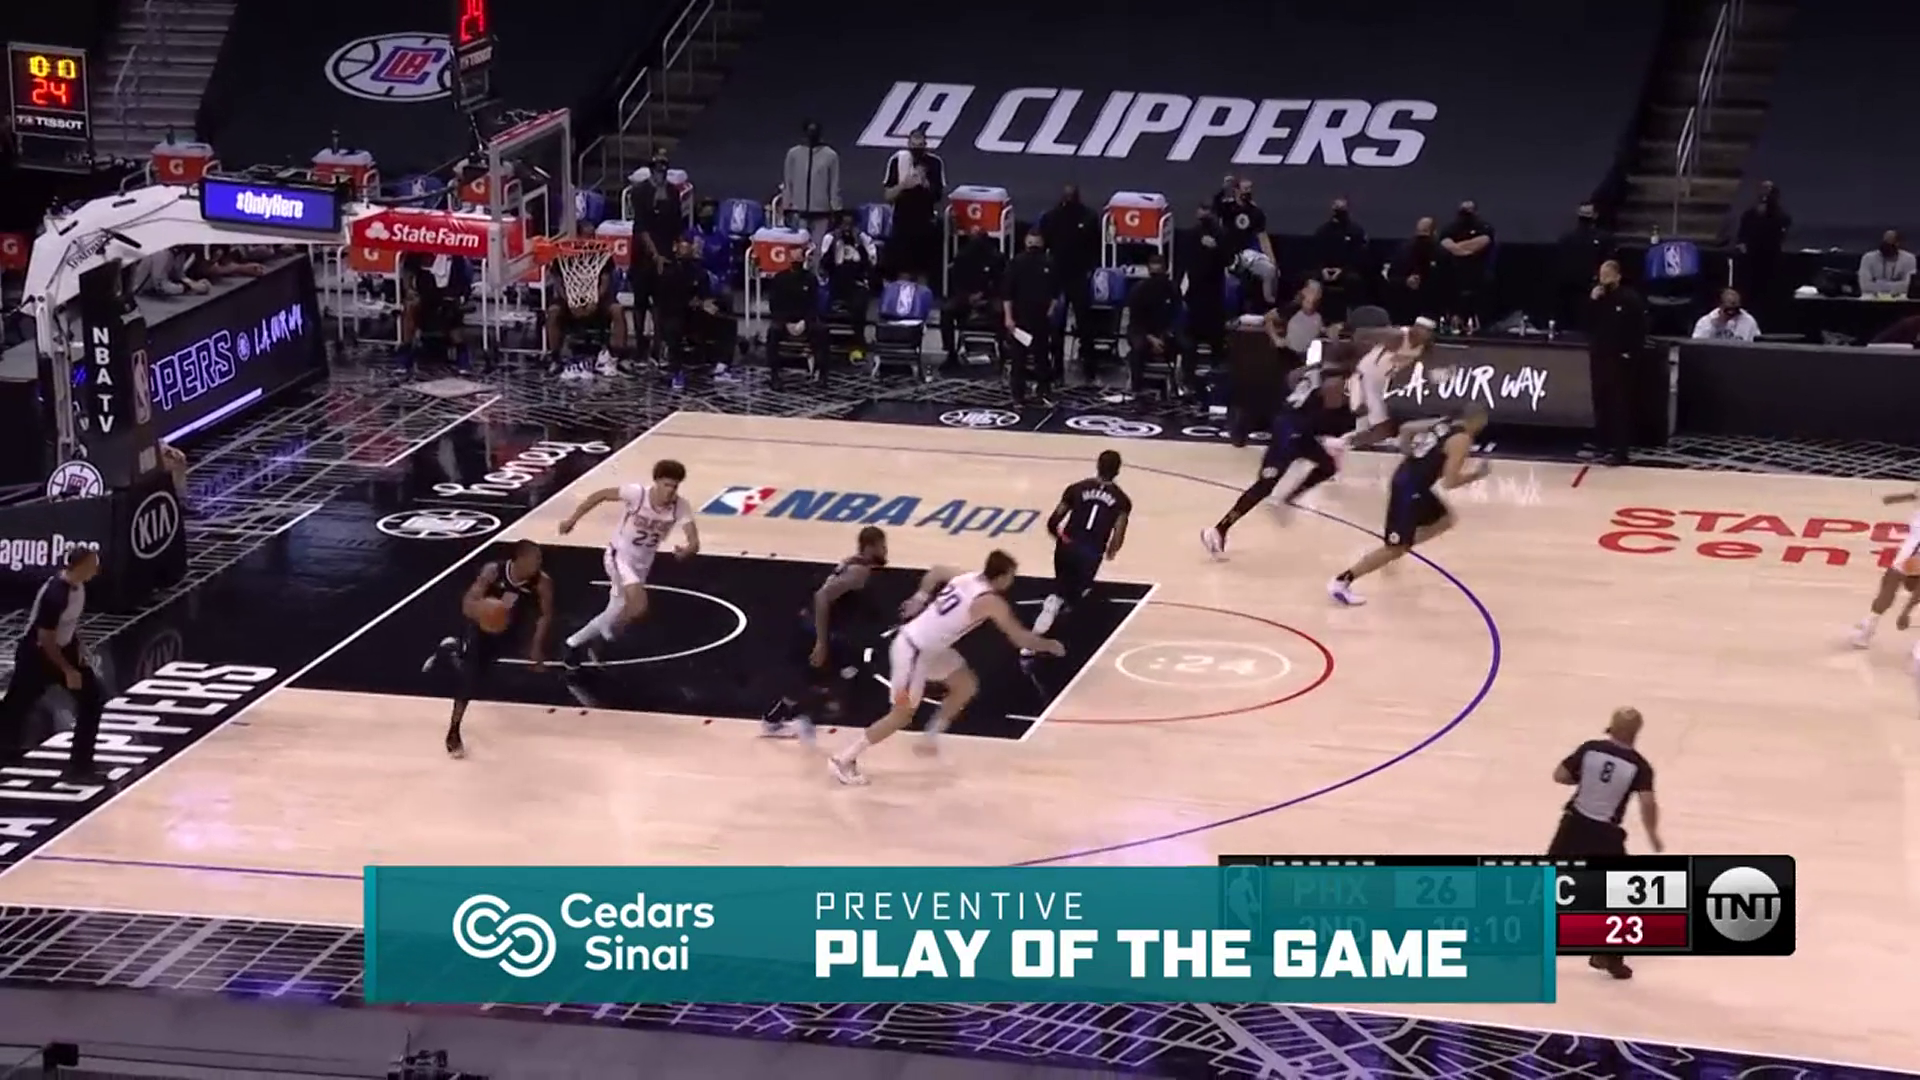 Cedars-Sinai Preventive Play of the Game | Clippers vs Suns (4.8.21)